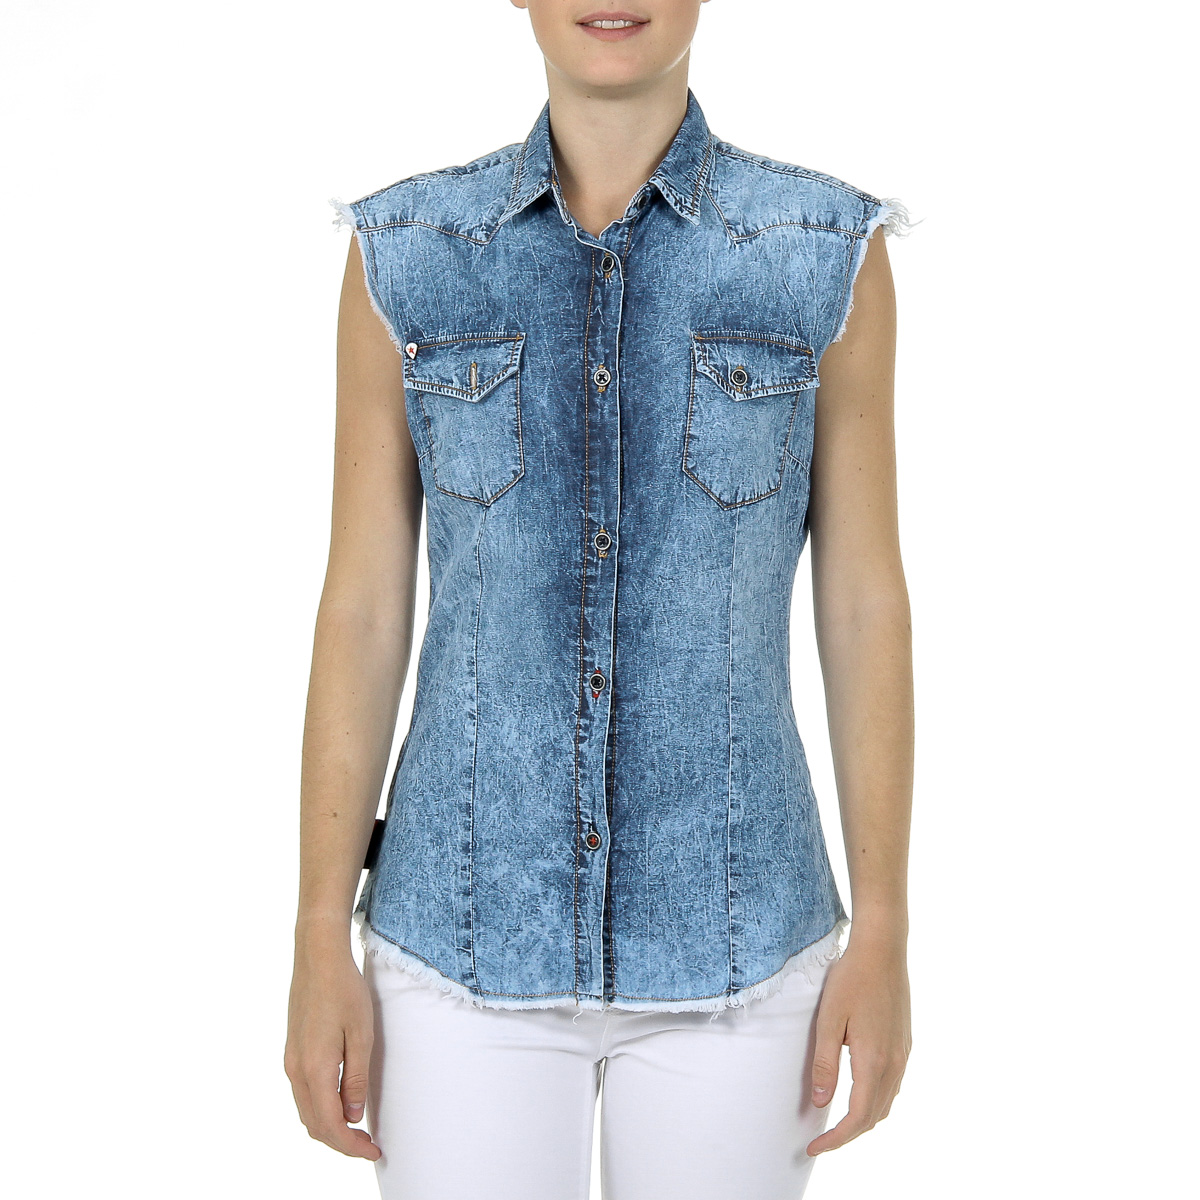 Primary image for Andrew Charles Womens Shirt Sleeveless Denim CAMILIA